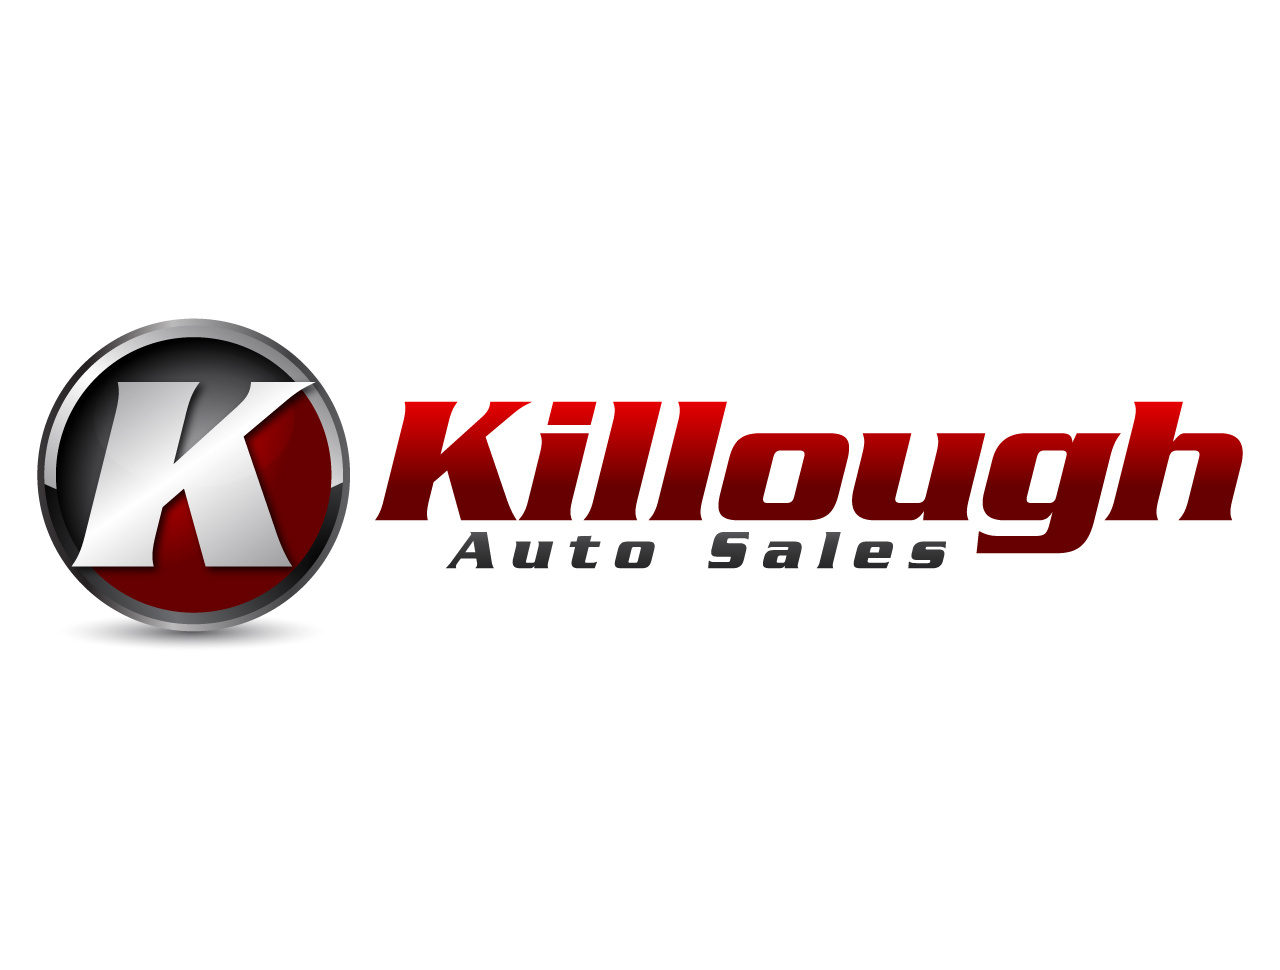 killough auto sales brandon ms read consumer reviews browse used and new cars for sale. Black Bedroom Furniture Sets. Home Design Ideas